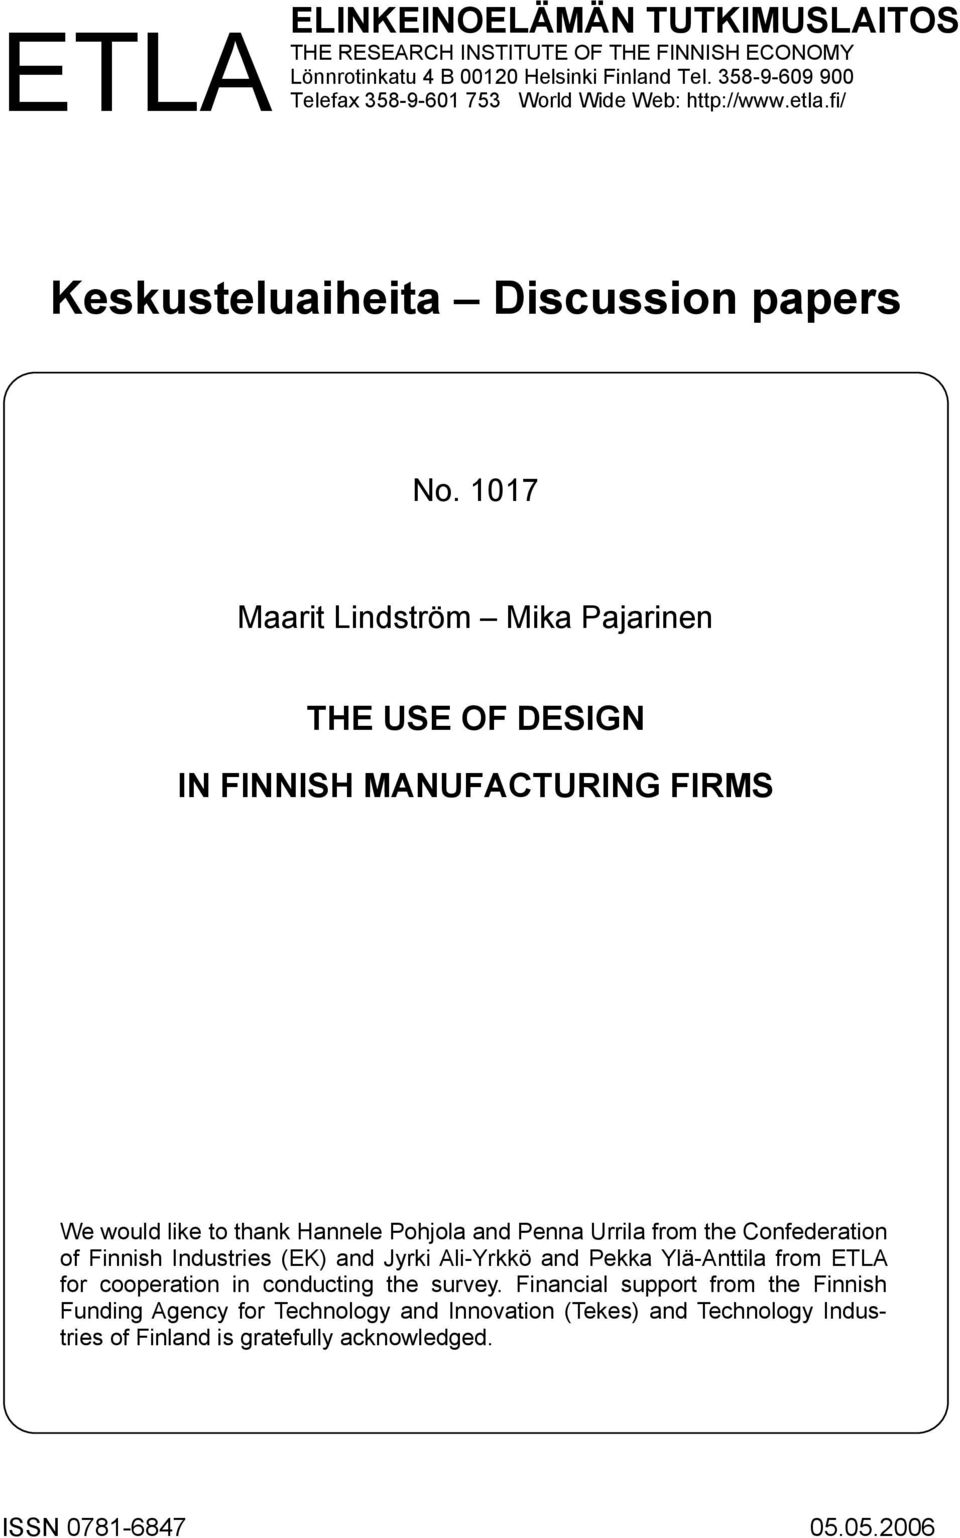 1017 Maarit Lindström Mika Pajarinen THE USE OF DESIGN IN FINNISH MANUFACTURING FIRMS We would like to thank Hannele Pohjola and Penna Urrila from the Confederation of Finnish